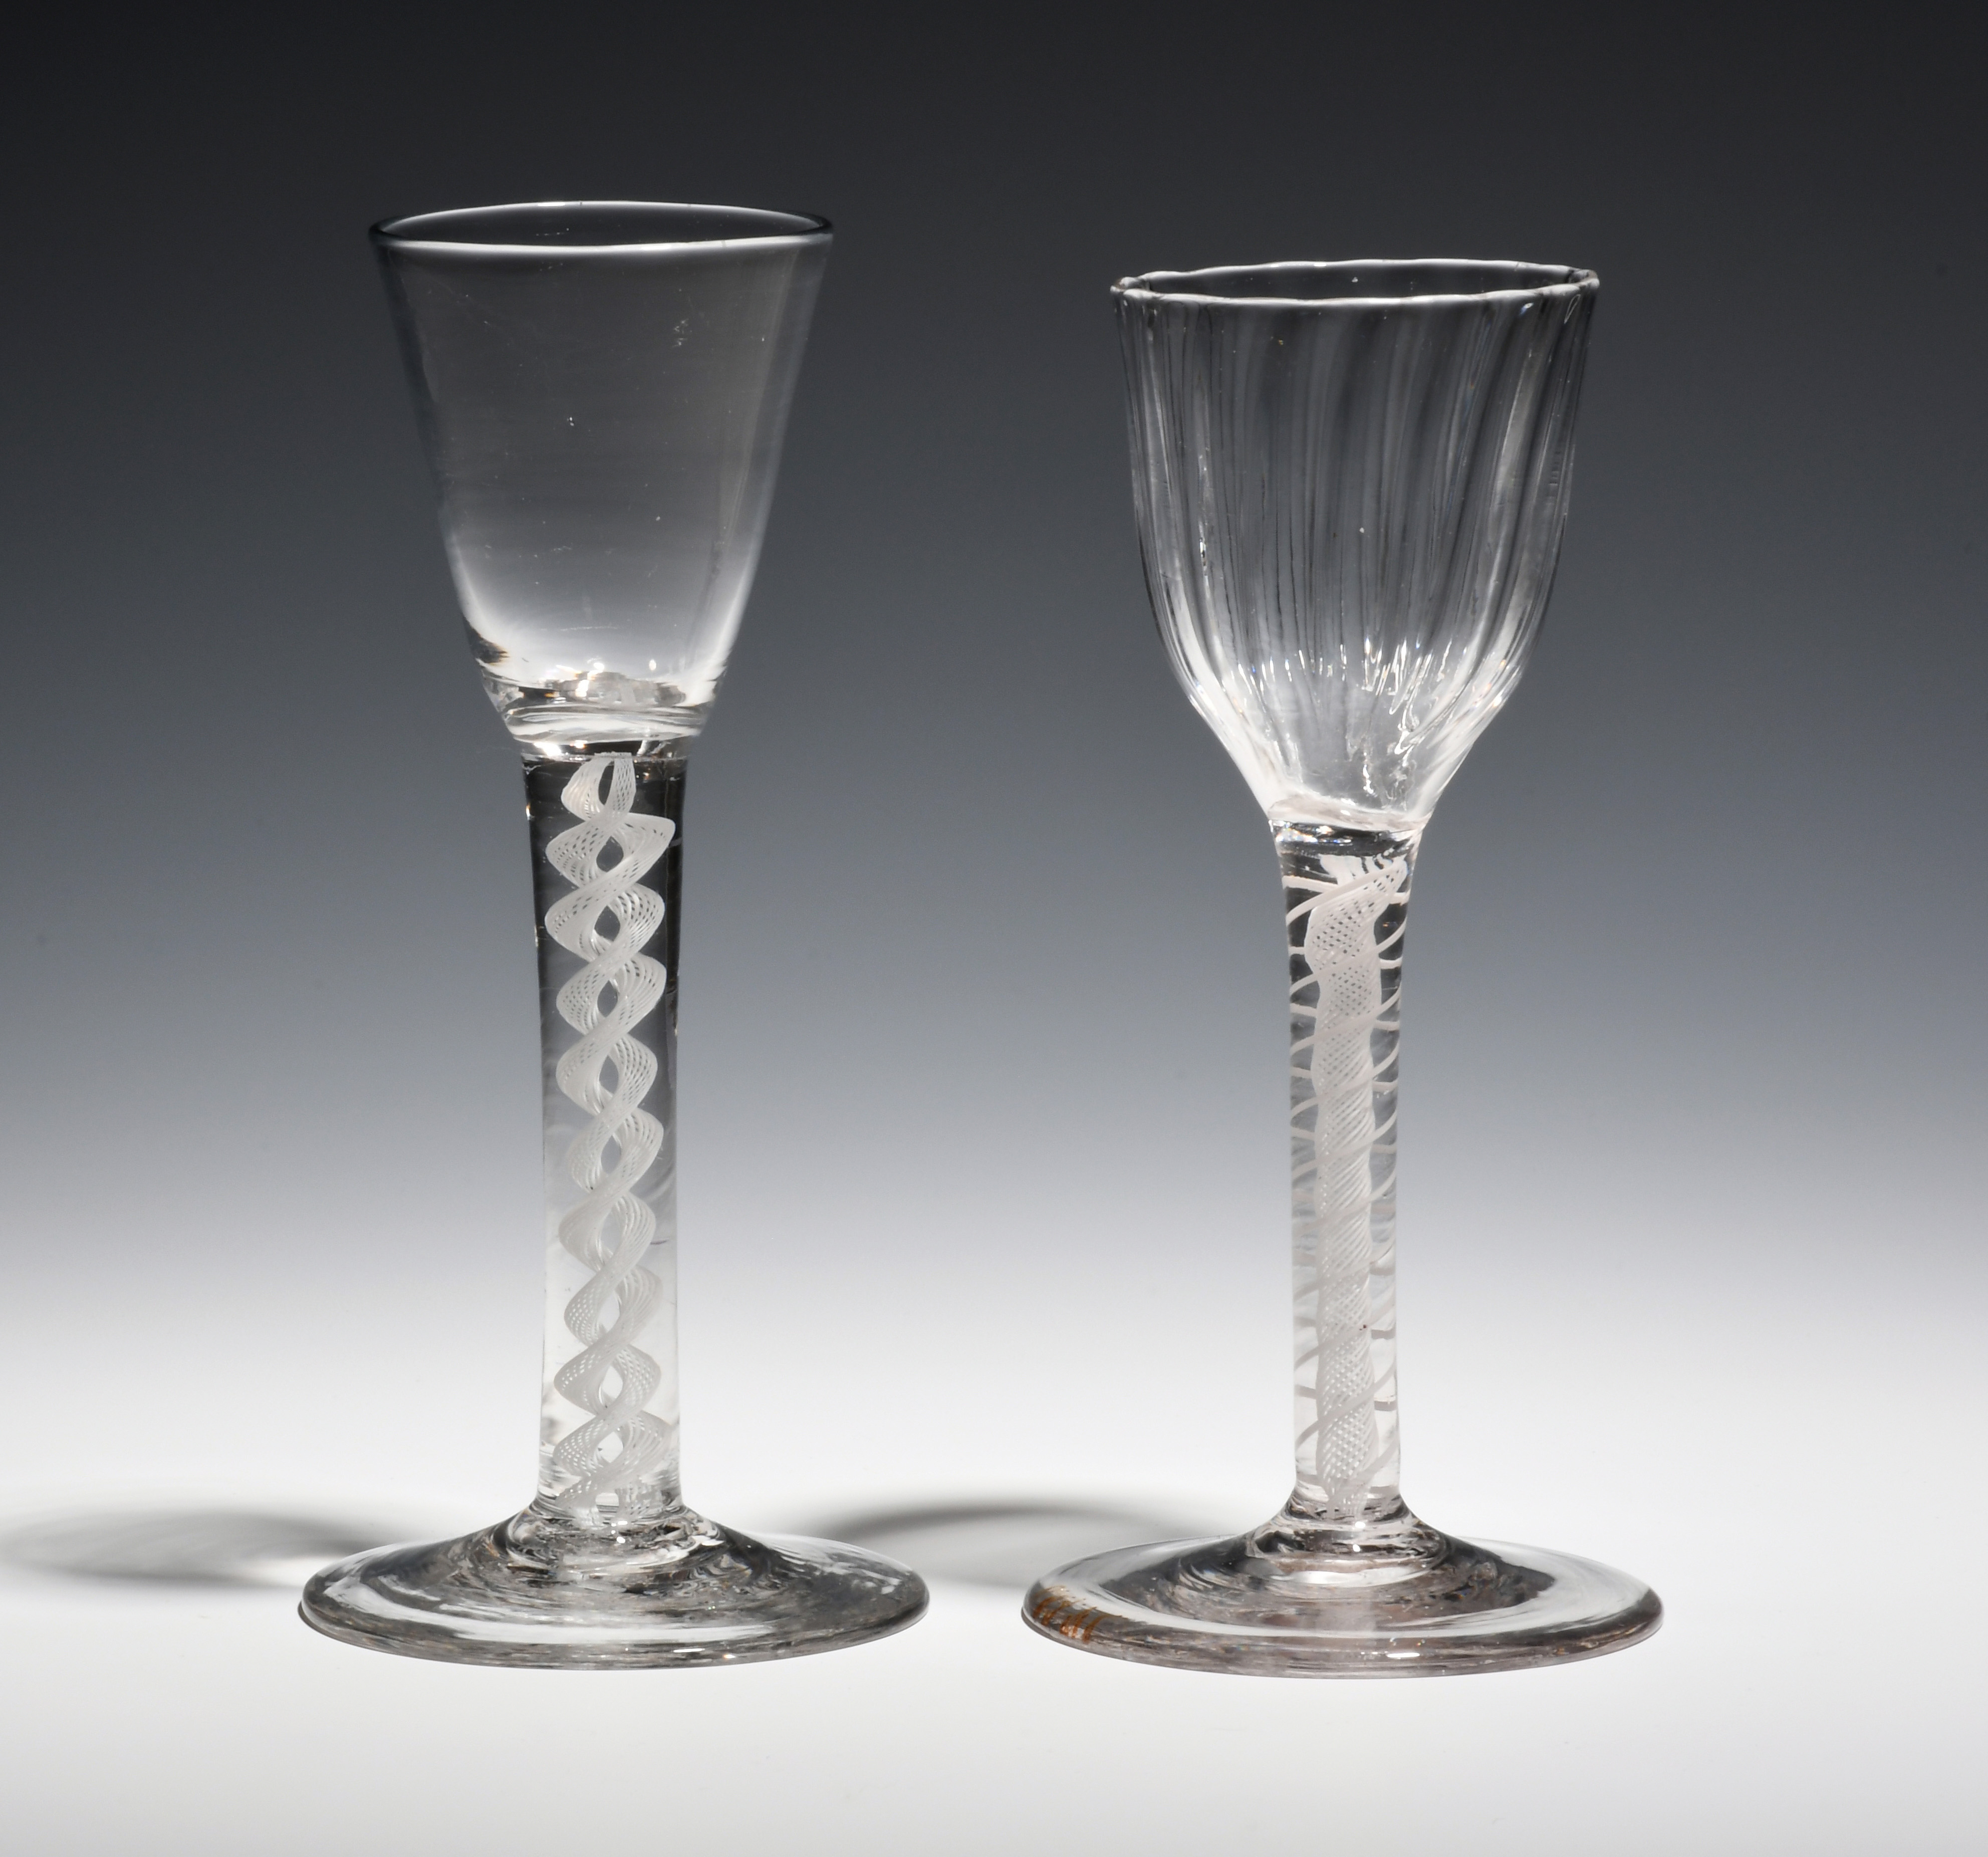 Two wine glasses c.1760-70, one with a round funnel bowl on an opaque twist stem, the other with a